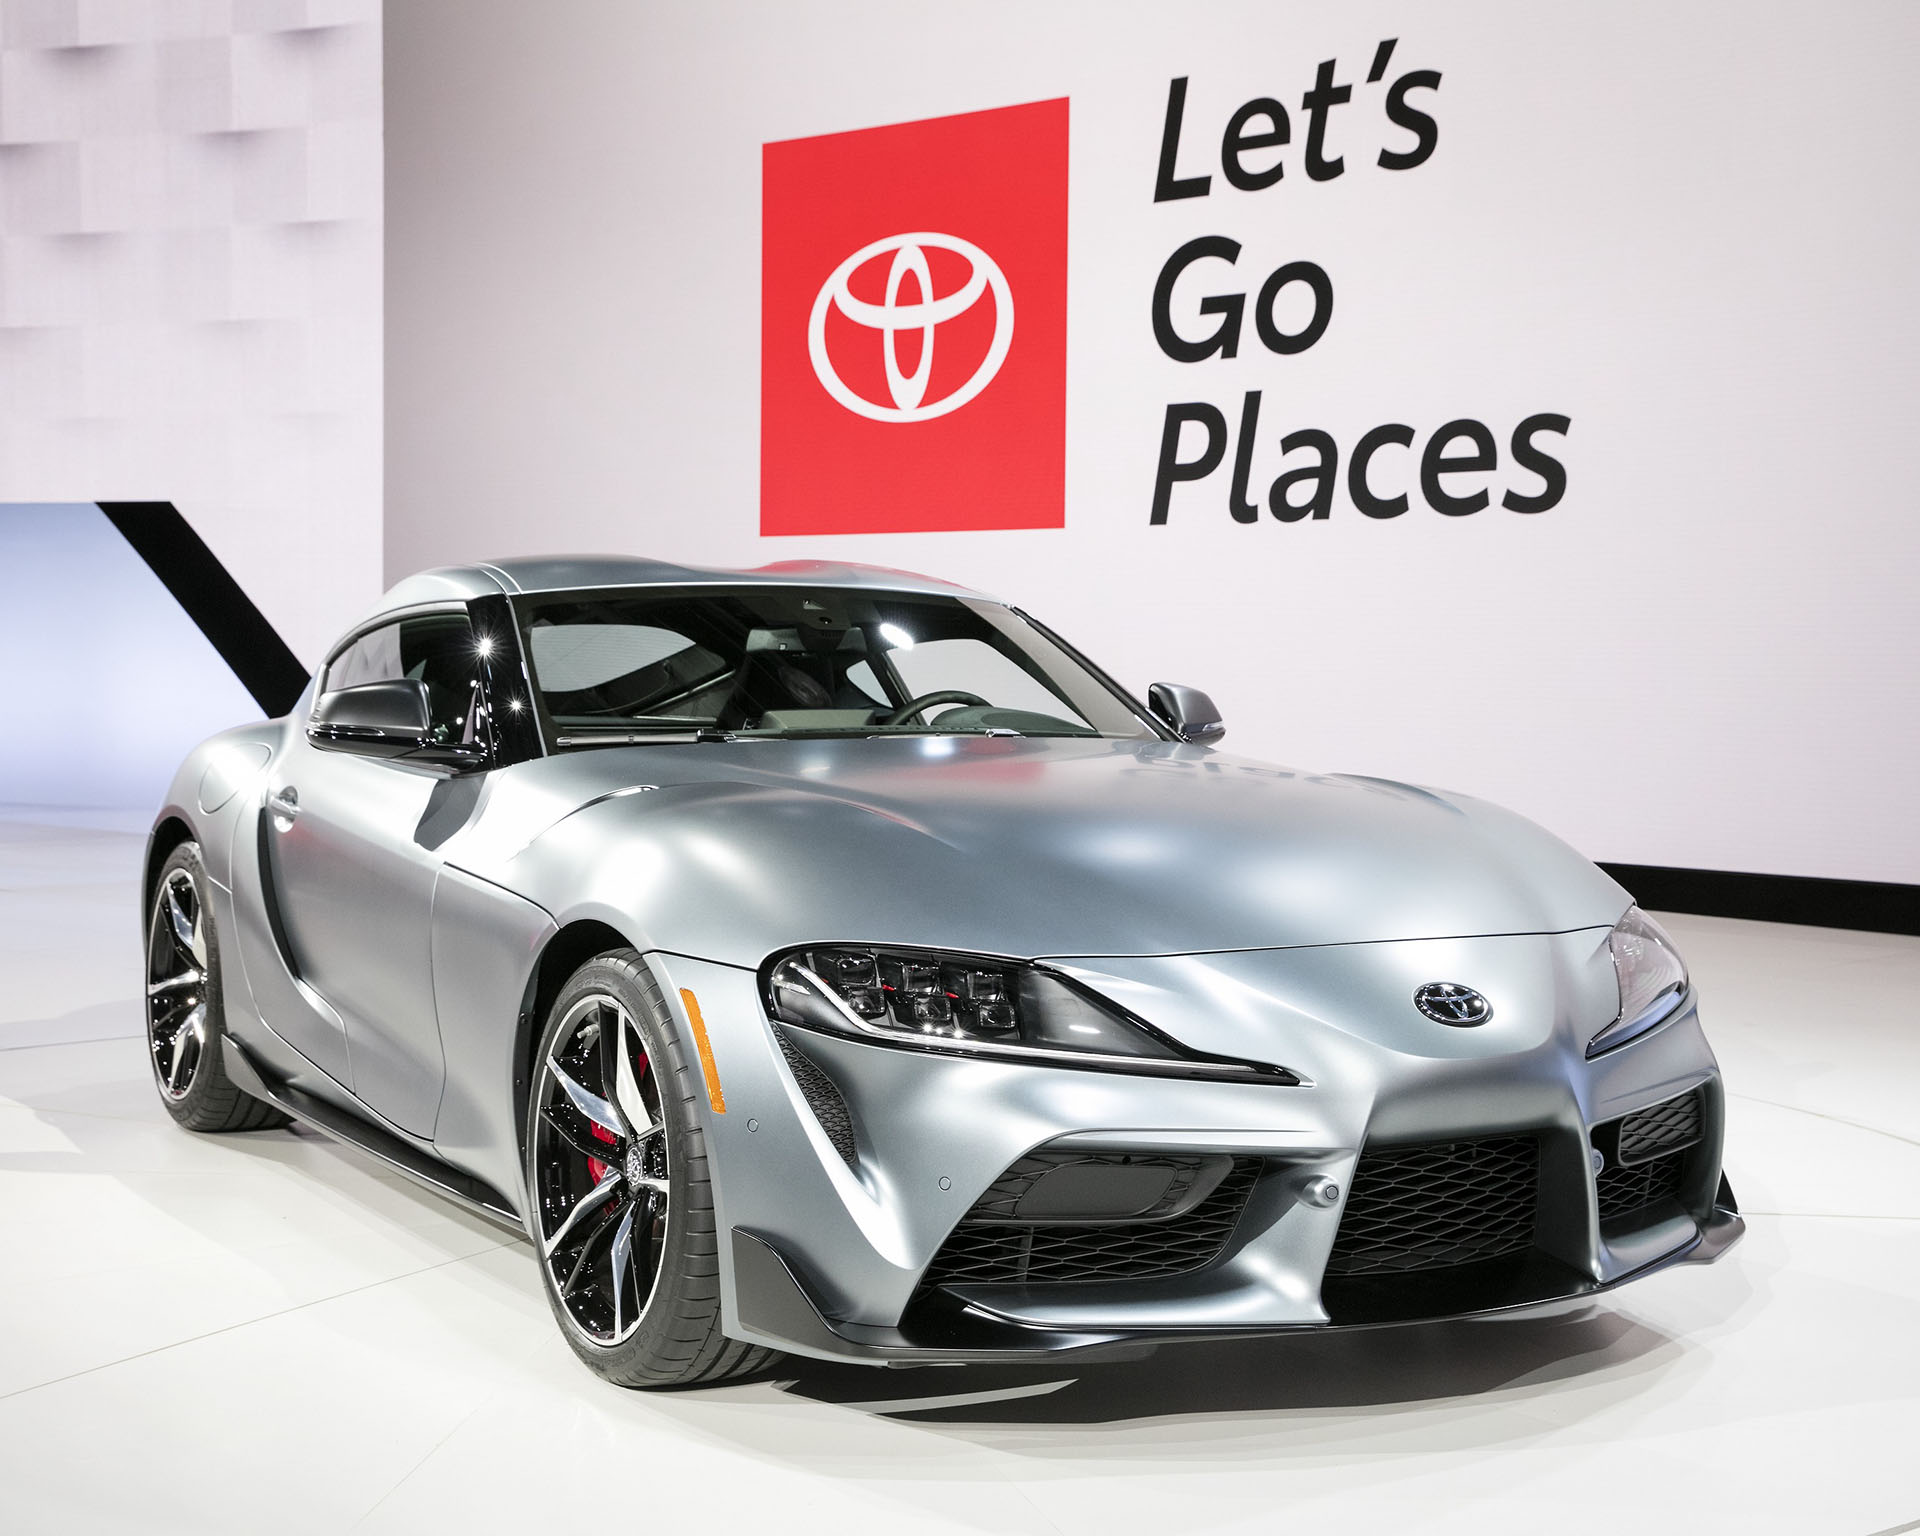 Toyota Supra A90 on the show floor